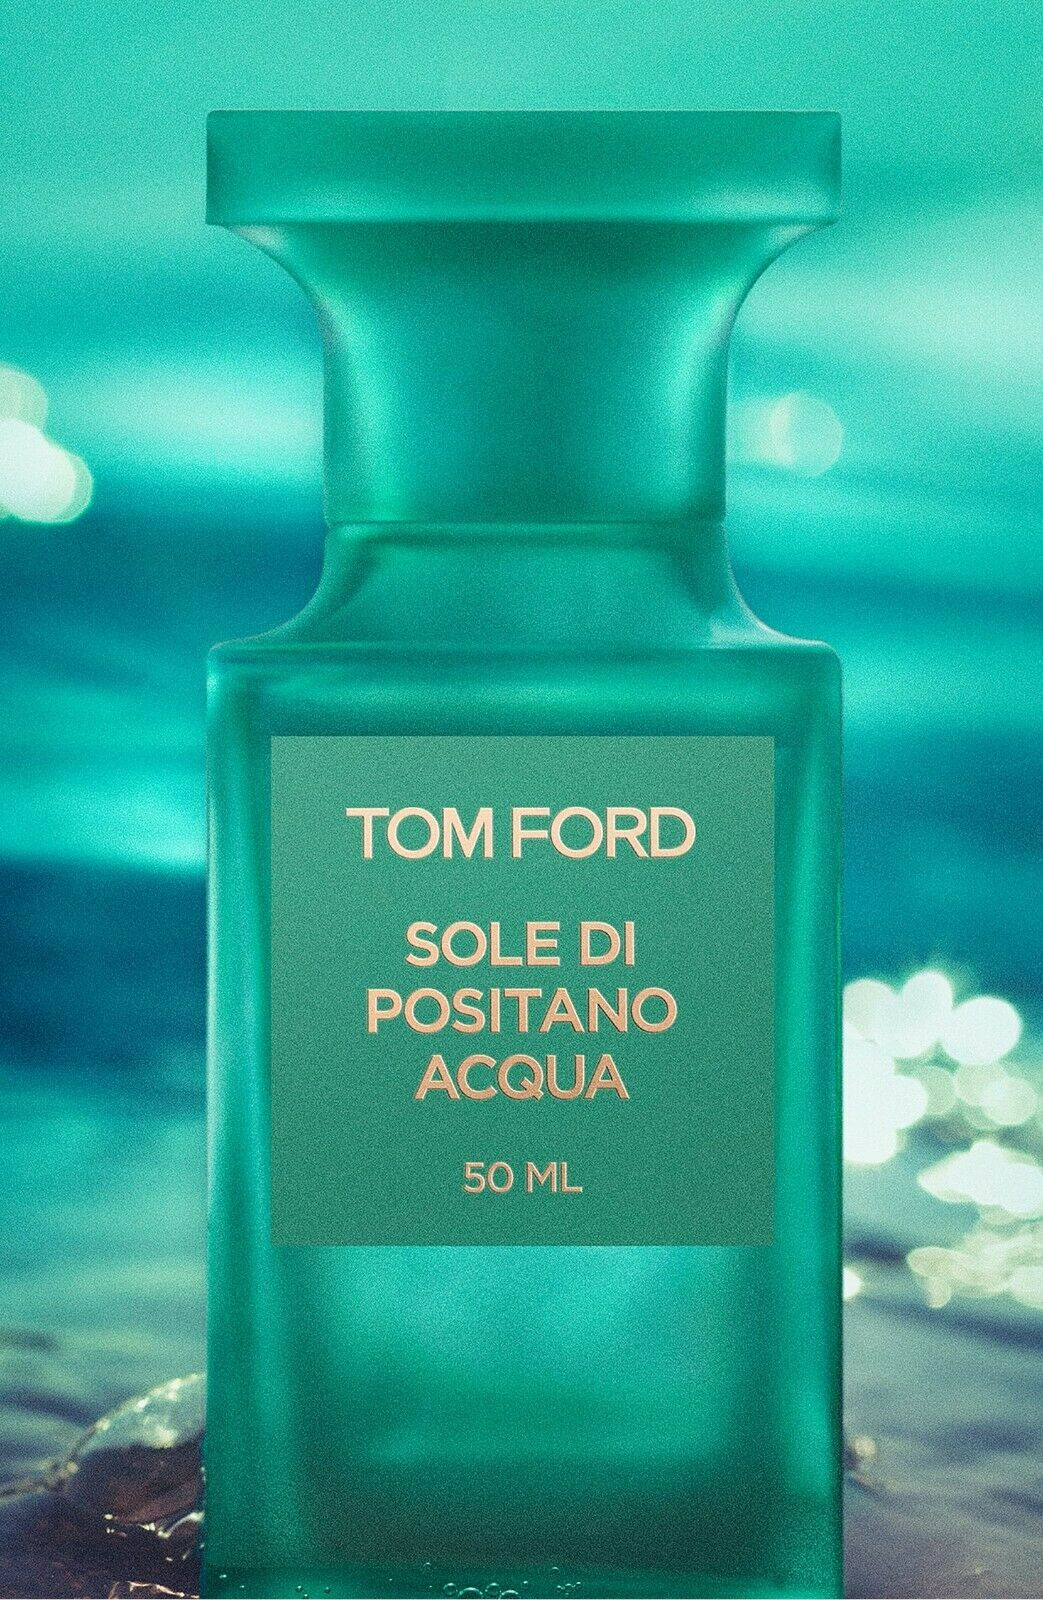 NEW TOM FORD SOLE DI POSITANO ACQUA 1.7/ 50ml RARE 2019 Mens